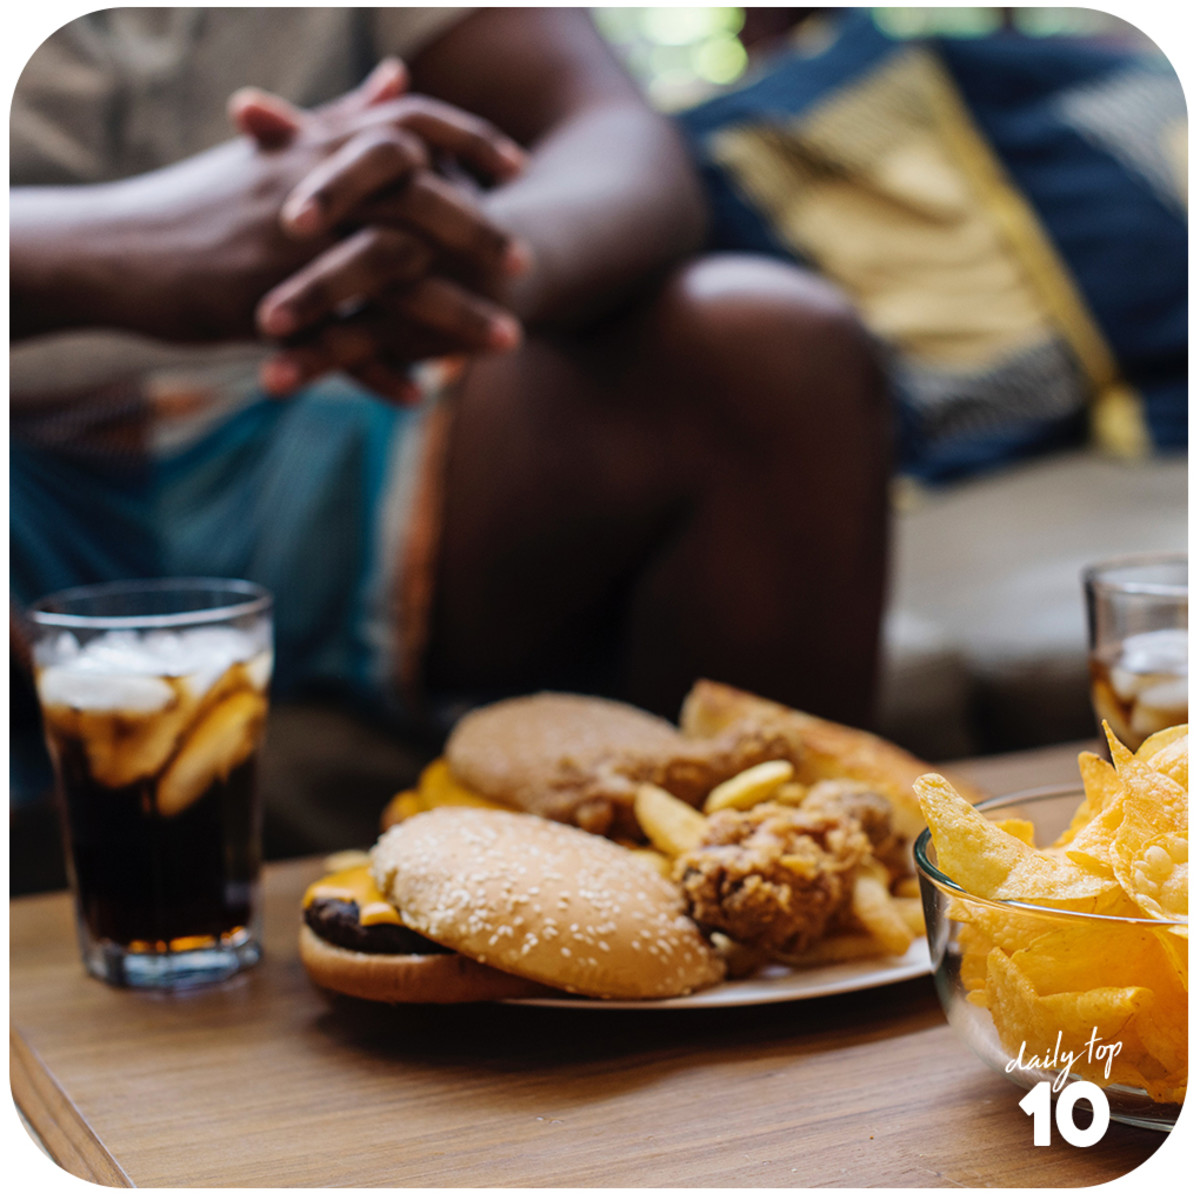 Junk foods are known to contain little nutrients, have tons of preservatives added, and are not as satisfying compared to their healthier counterparts.